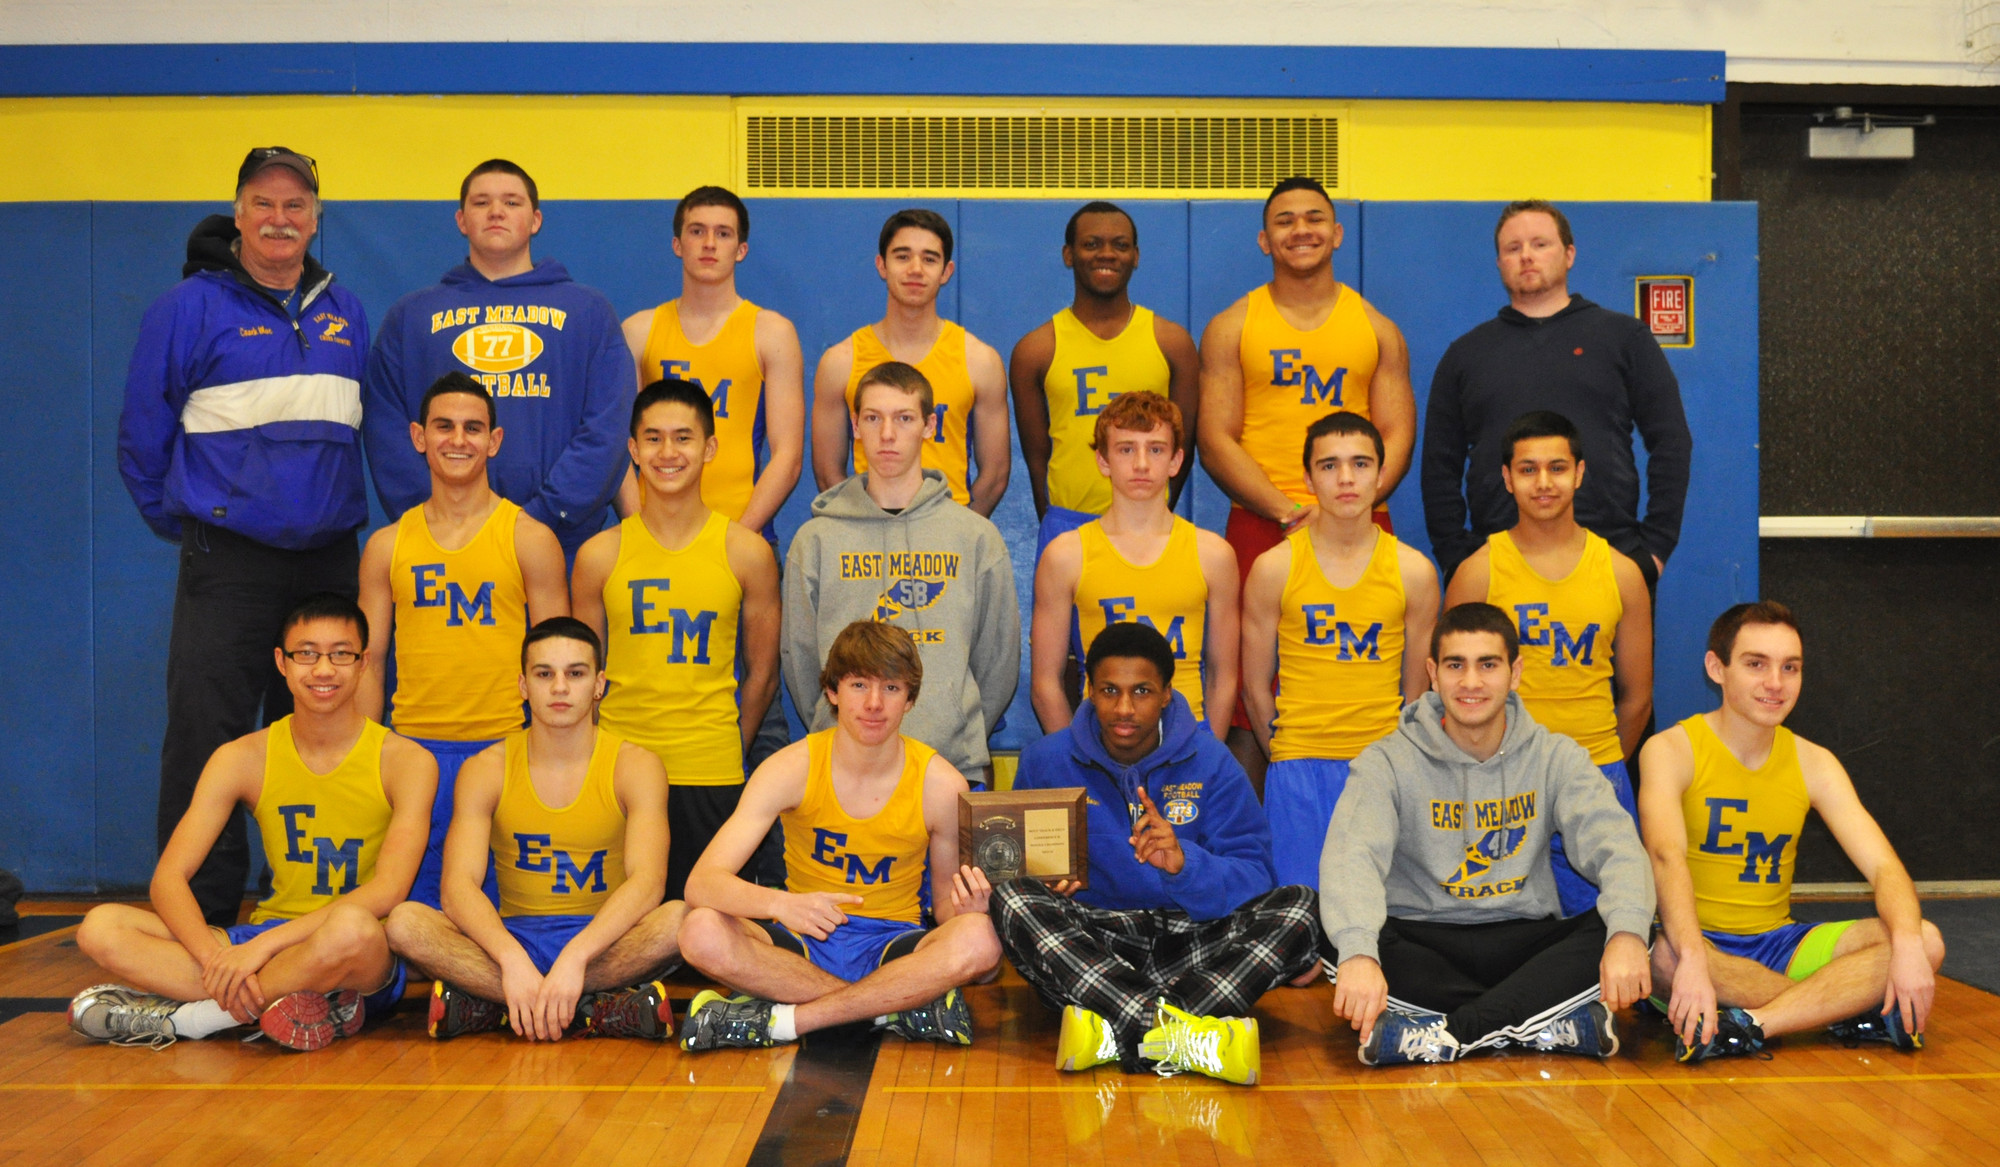 East Meadow High's conference champion winter track team, at top left, coach Jim McGlynn, Matthew Mascia, Joe Puciloski, Michael Walsh, Jay Robinson, Chika Ewulu, coach Michael Ringhauser, middle row, from left, Prabhnoor Multani, Chris Delgado, Tim Euler, Jake Healy, Peter Vo, Eric Gershoff, and bottom row, from left, Alex Wong, Christian Torres, Mike Grady, Tim Gibson, Rui Cunha and Rob Barracca.    Photo by Tony Belissimo/Herald